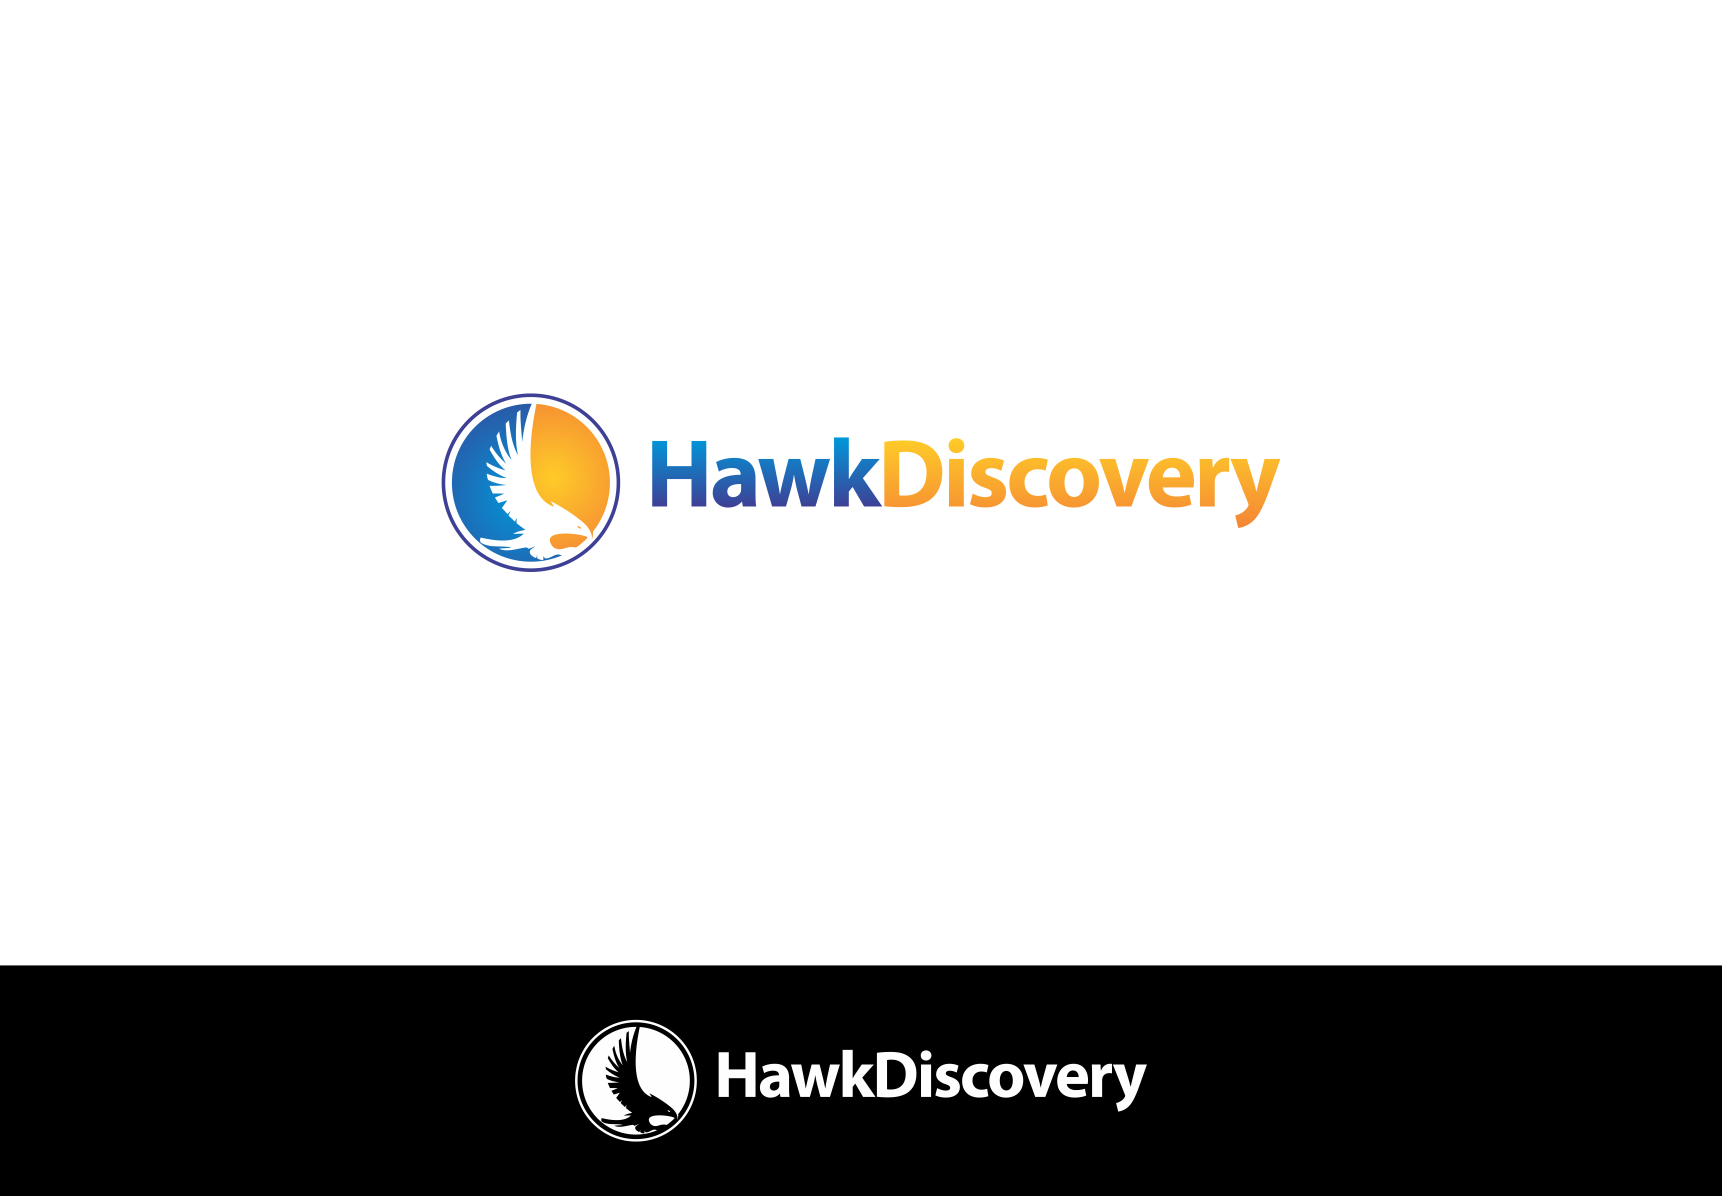 Create the next logo for HawkDiscovery